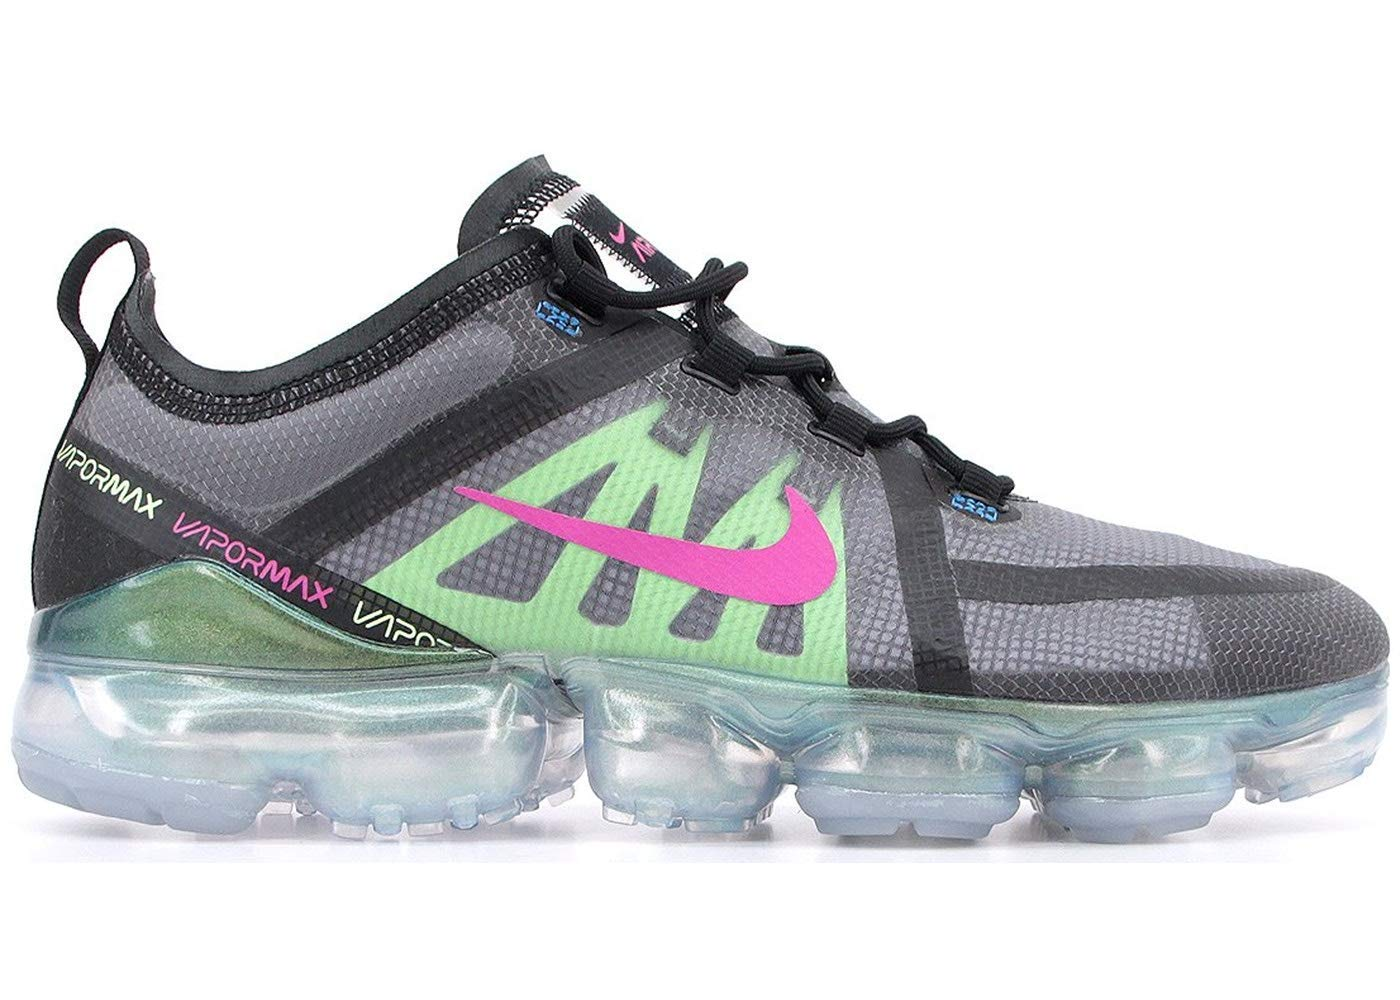 juntos Consecutivo promedio  Nike Men's Air Vapormax 2019 Premium Mesh, Black/Active Fuchsia, Size 10.0-  Buy Online in Cayman Islands at cayman.desertcart.com. ProductId :  144635001.